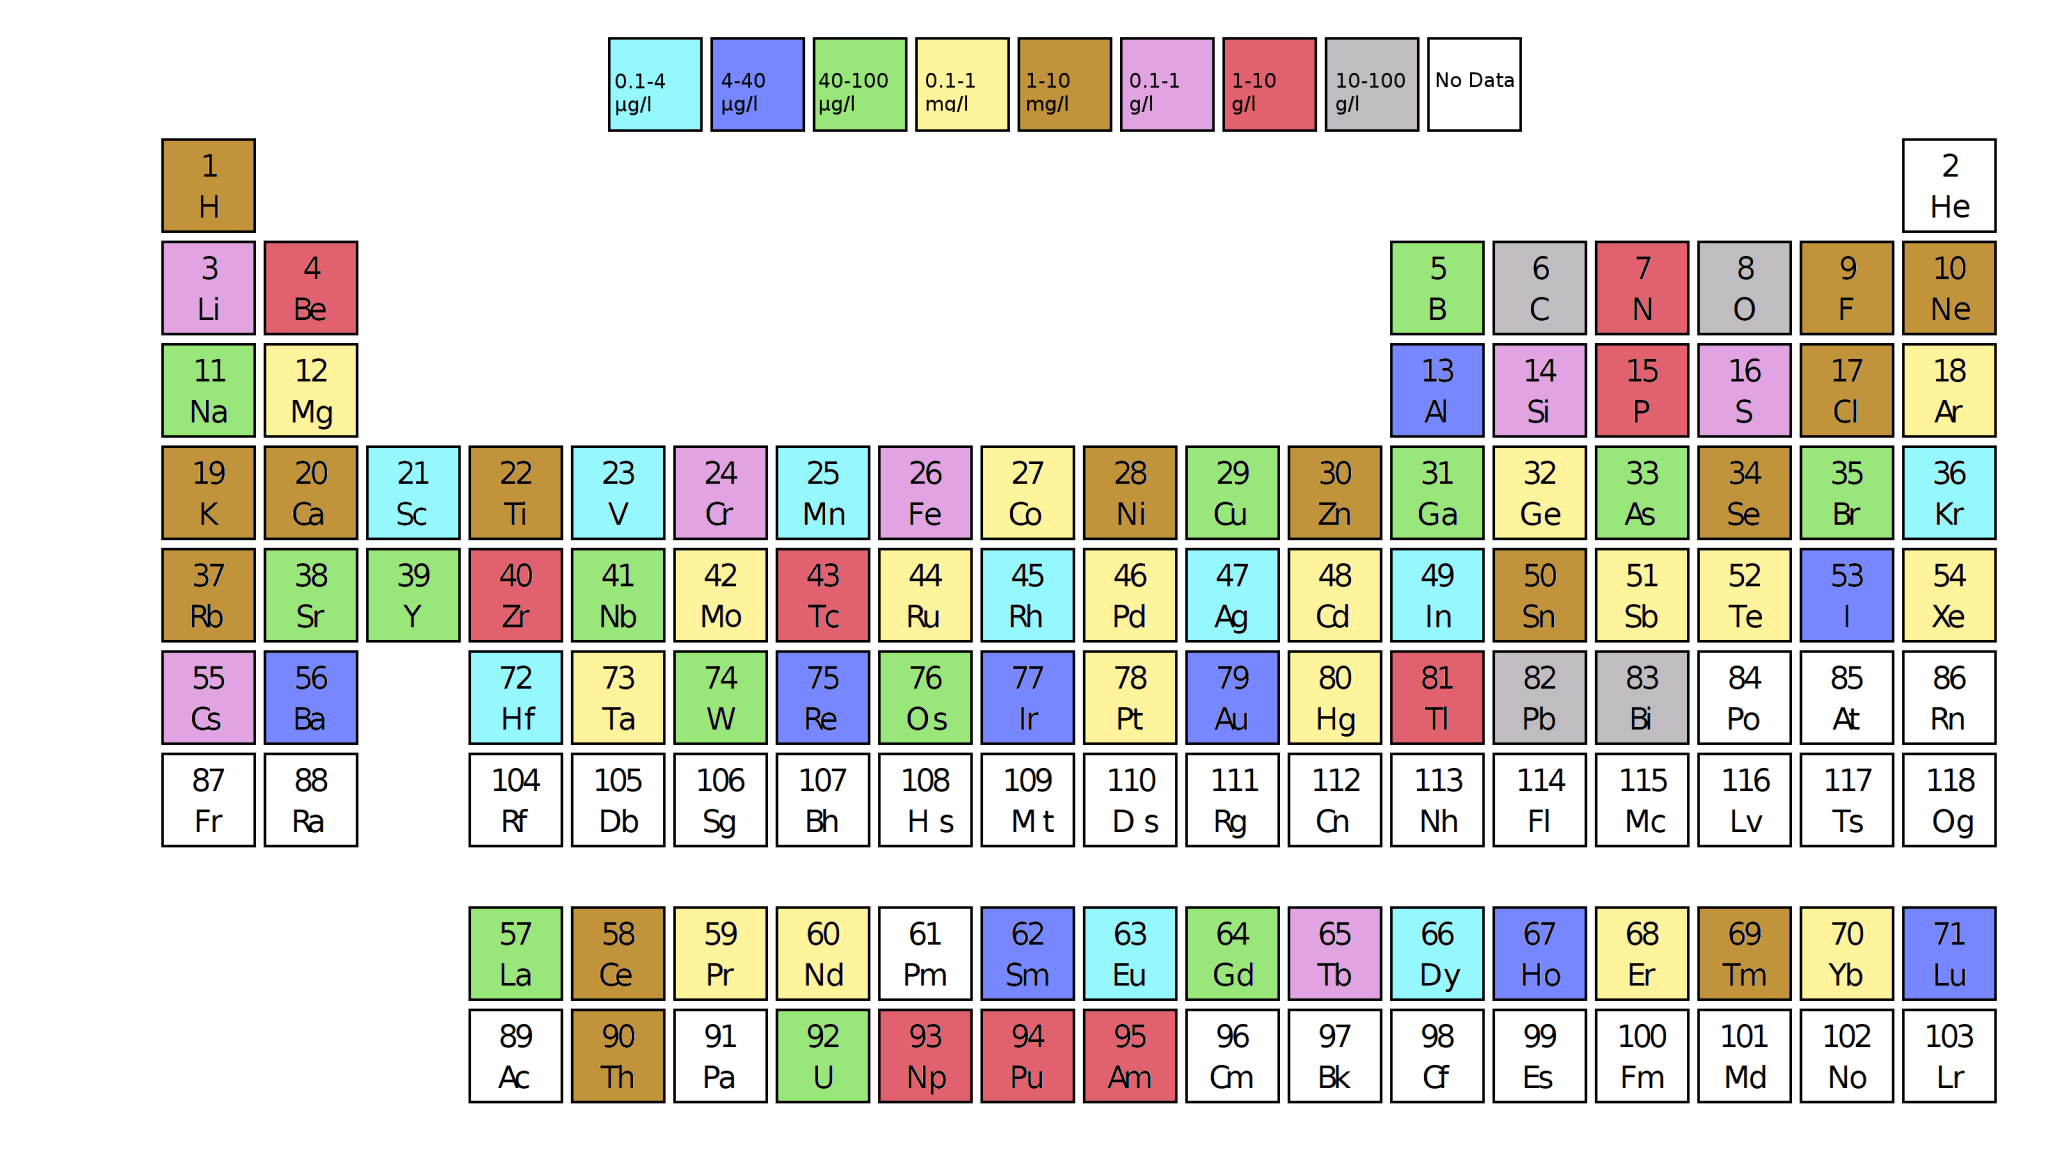 Periodic table containing neutron activation analysis (NAA) detection thresholds